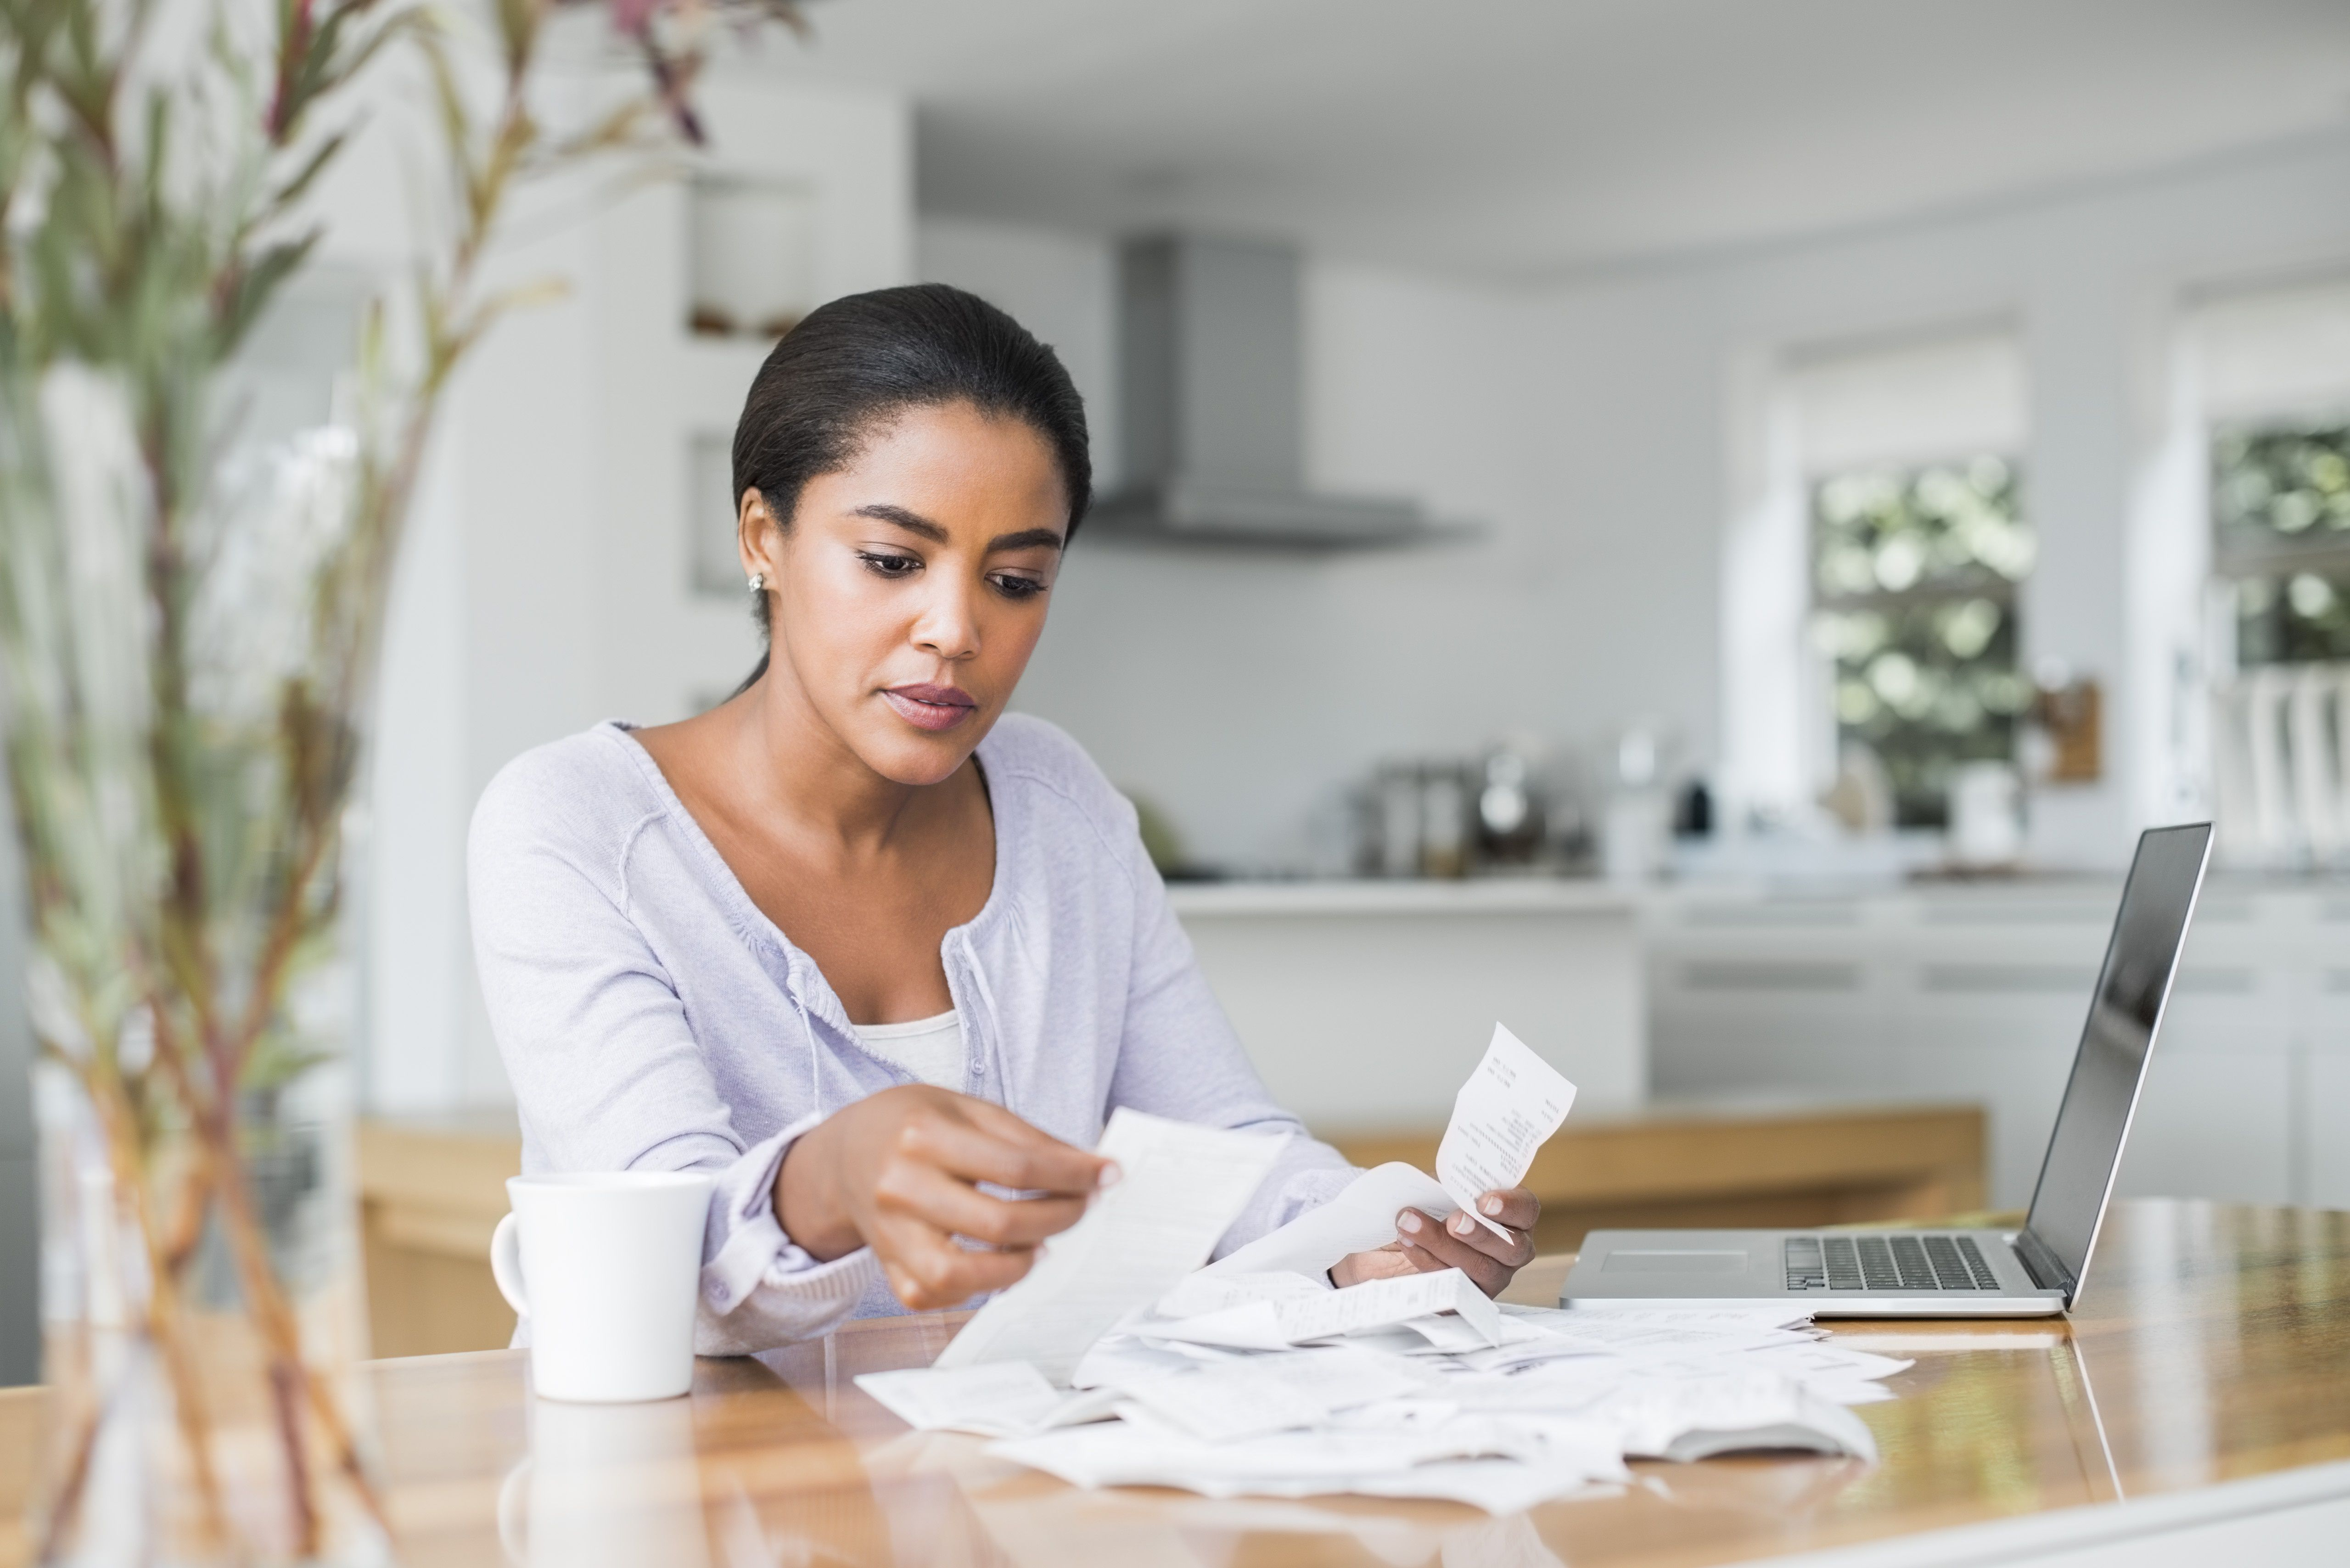 A woman pays bills online at home